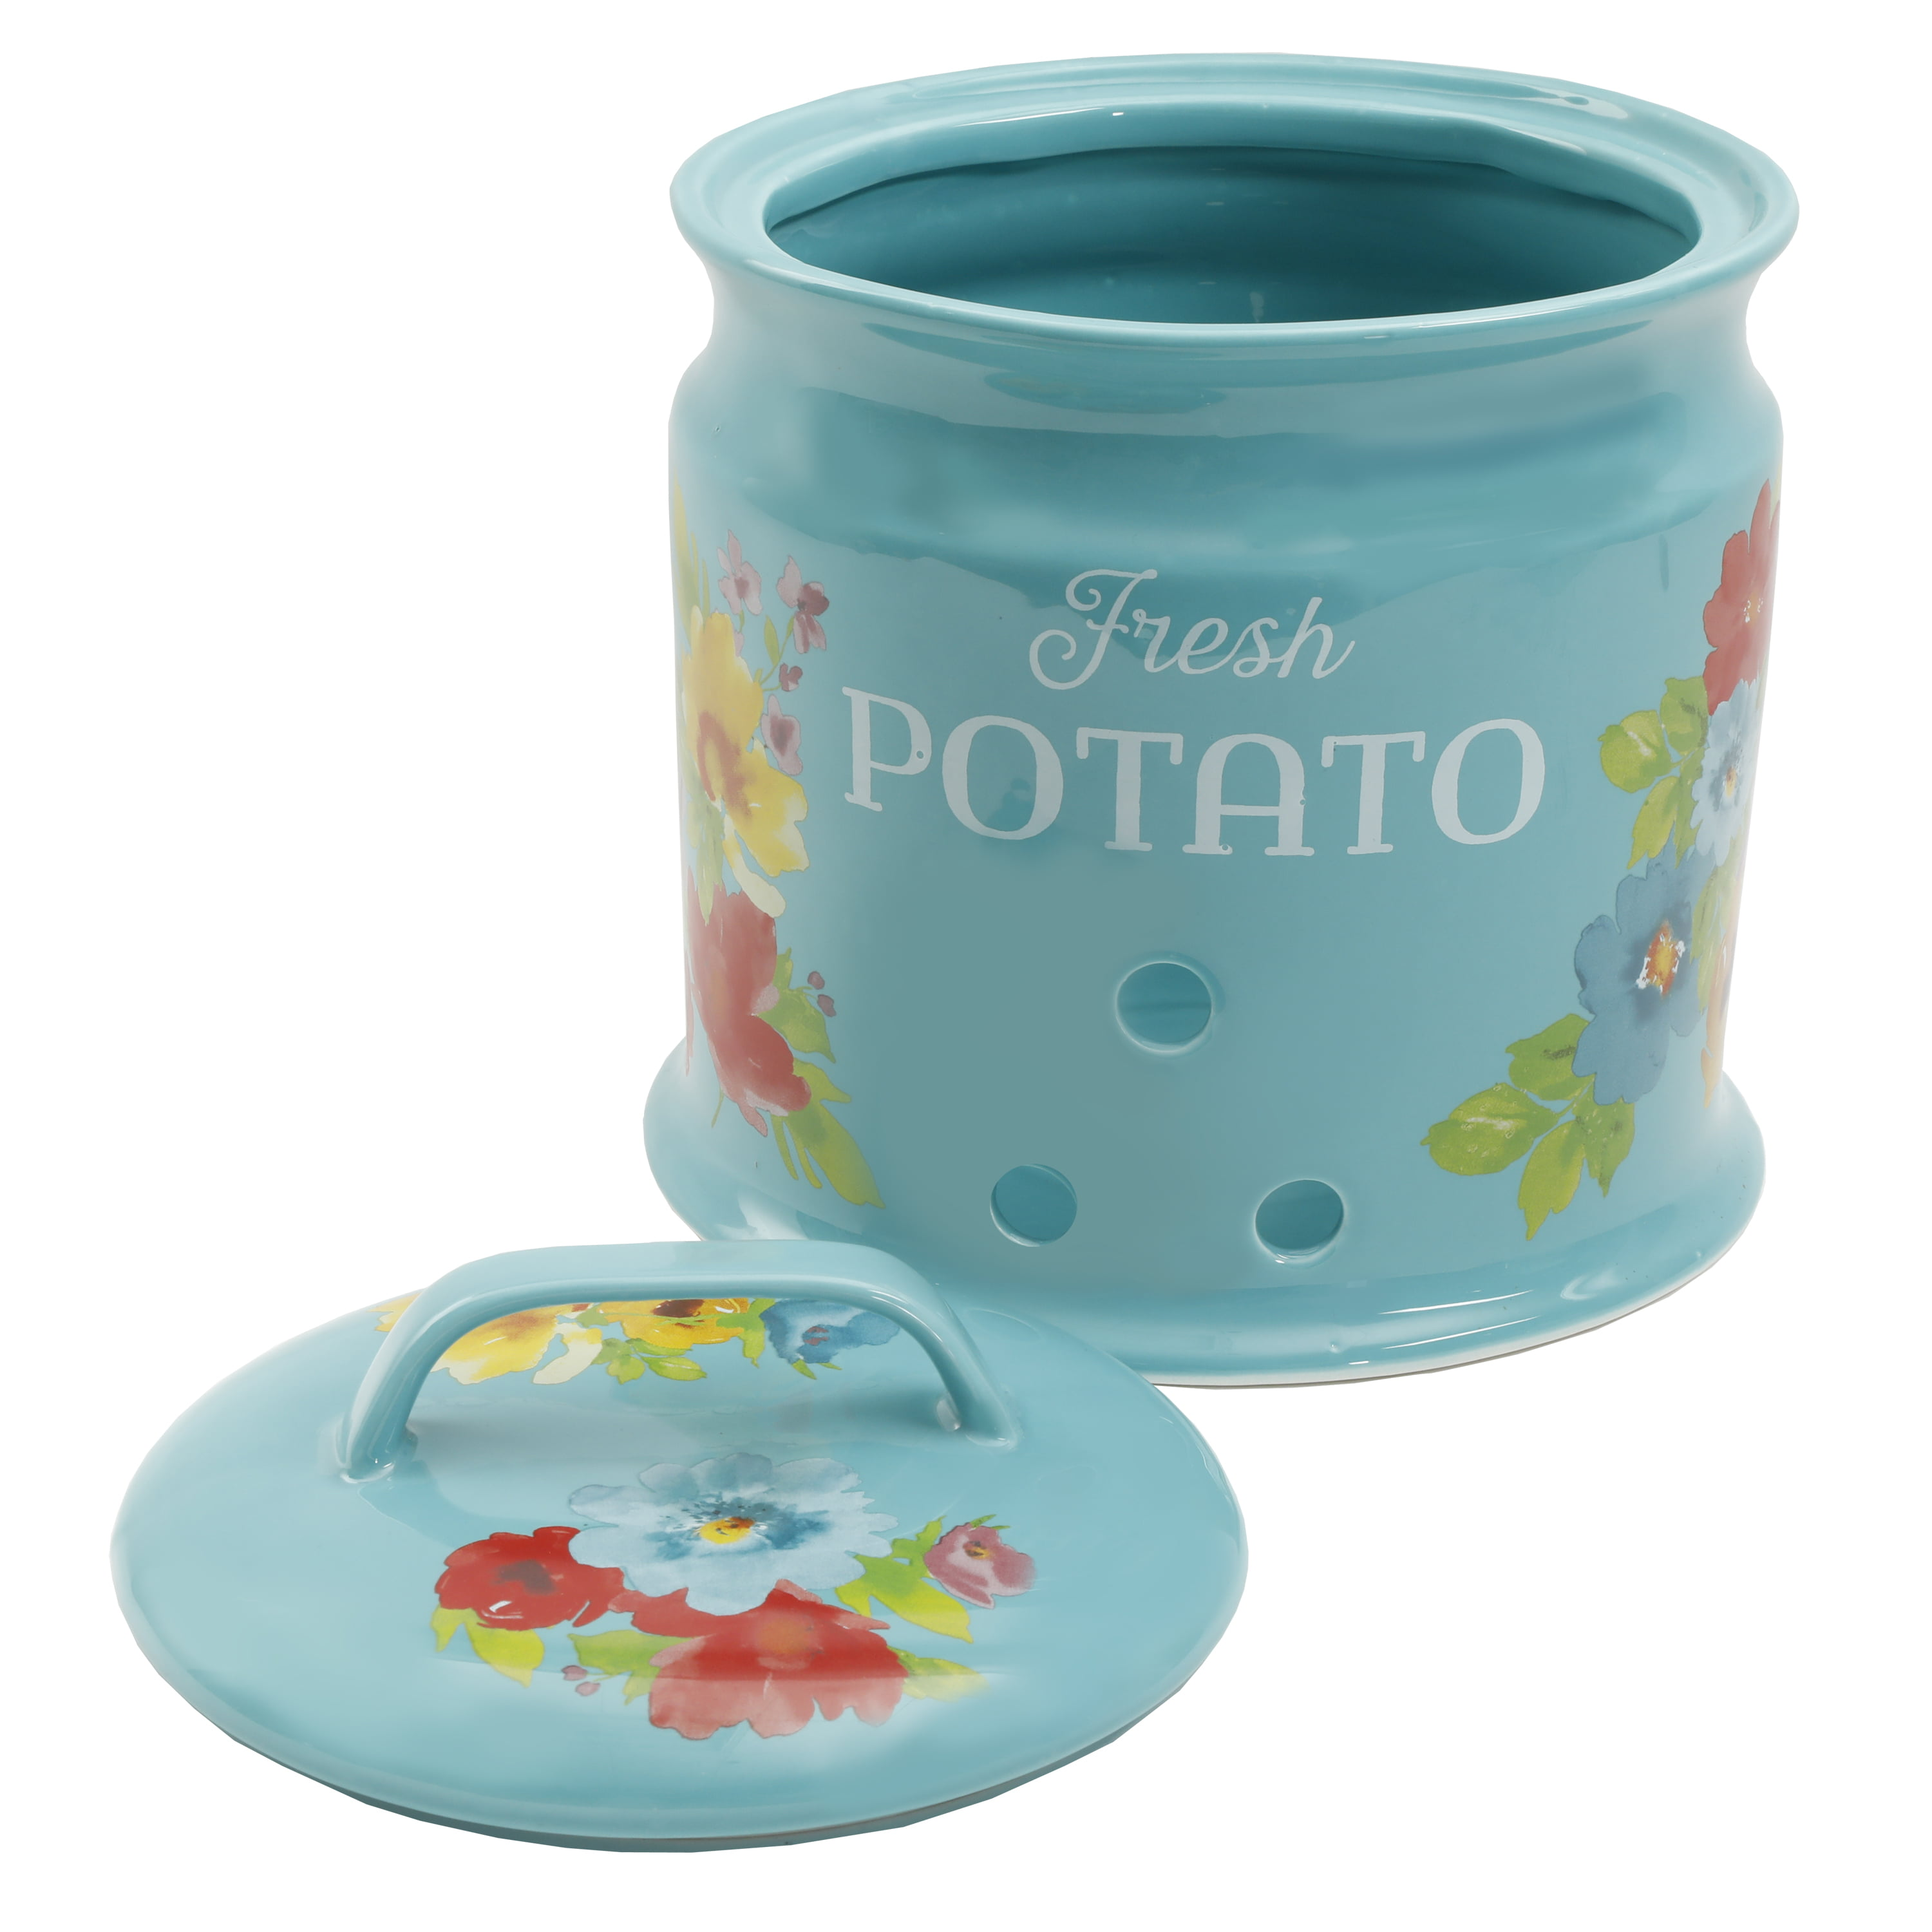 The Pioneer Woman Breezy Blossoms 9.5 Inch Potato Keeper ...